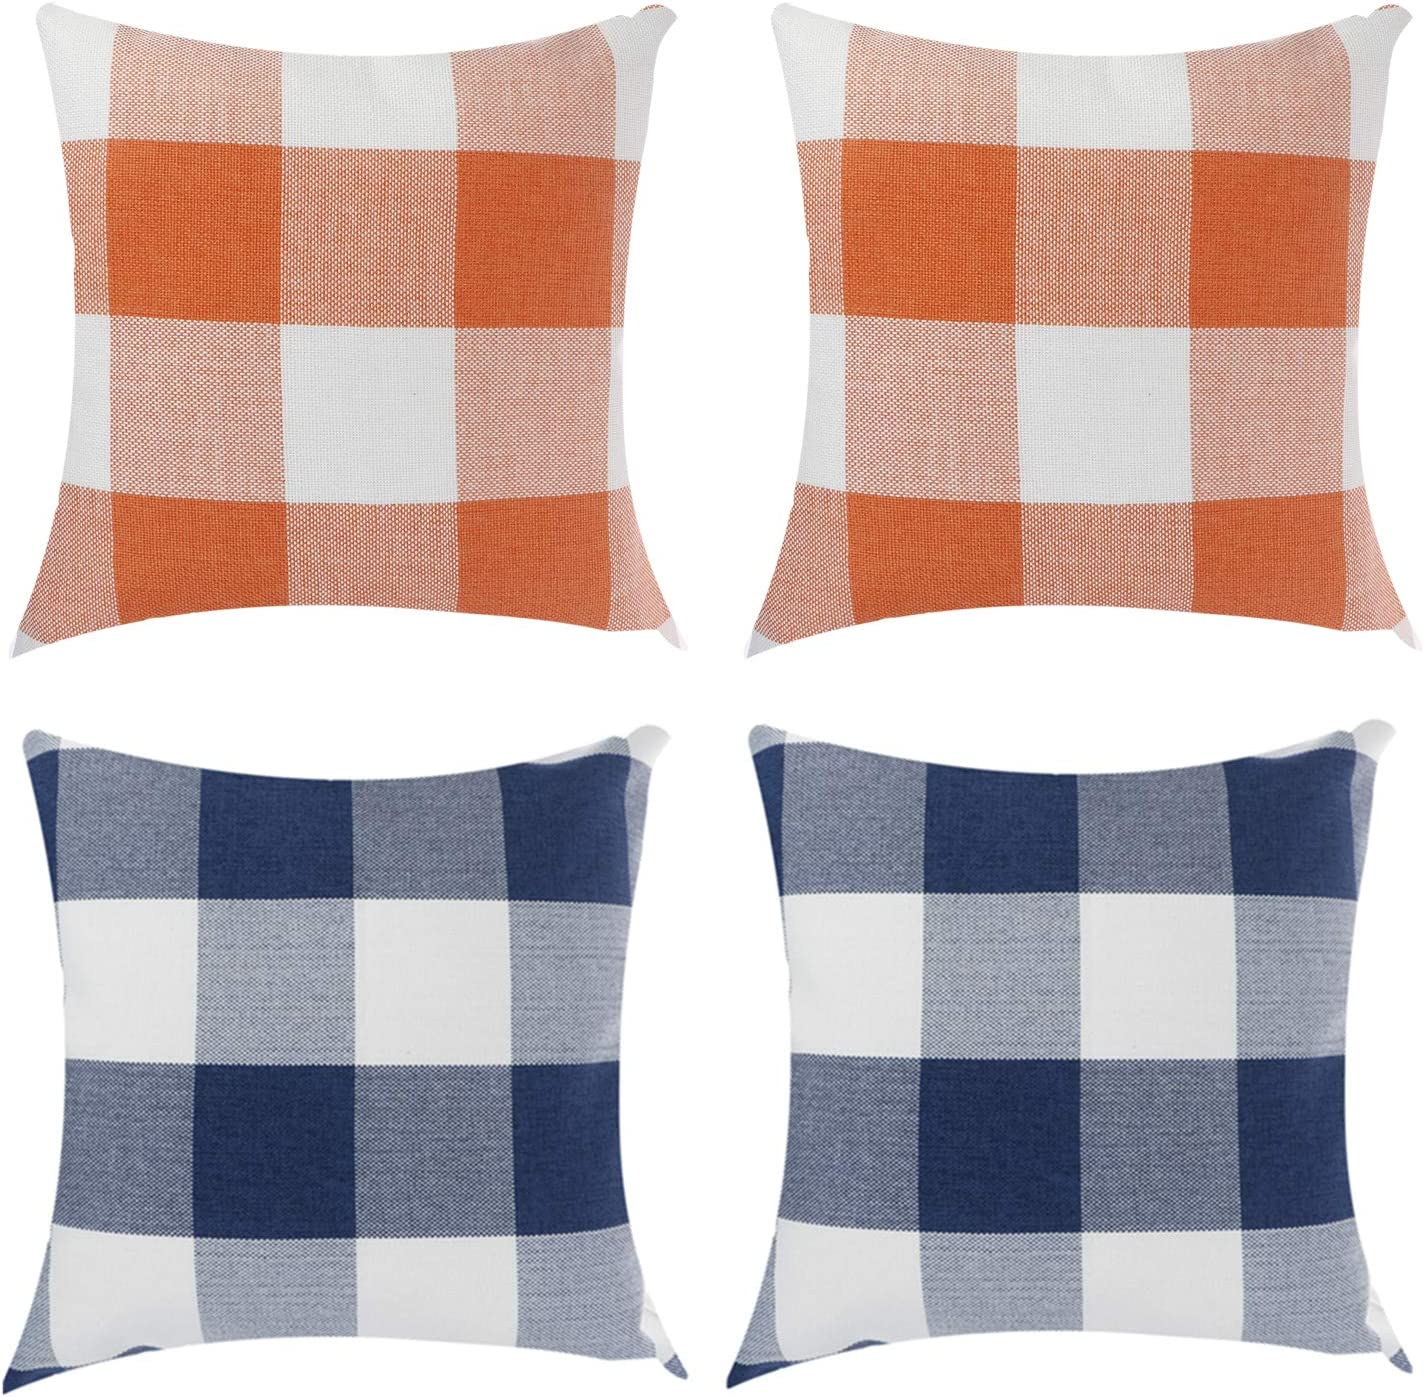 Ioffersuper 4Pack Plaid Pillow Covers Classic Navy Blue&Orange&White Buffalo Plaids Throw Pillow Case Zippered Square Cushion Covers for Home Bedroom Car Sofa Decor,45x45CM/18x18Inch